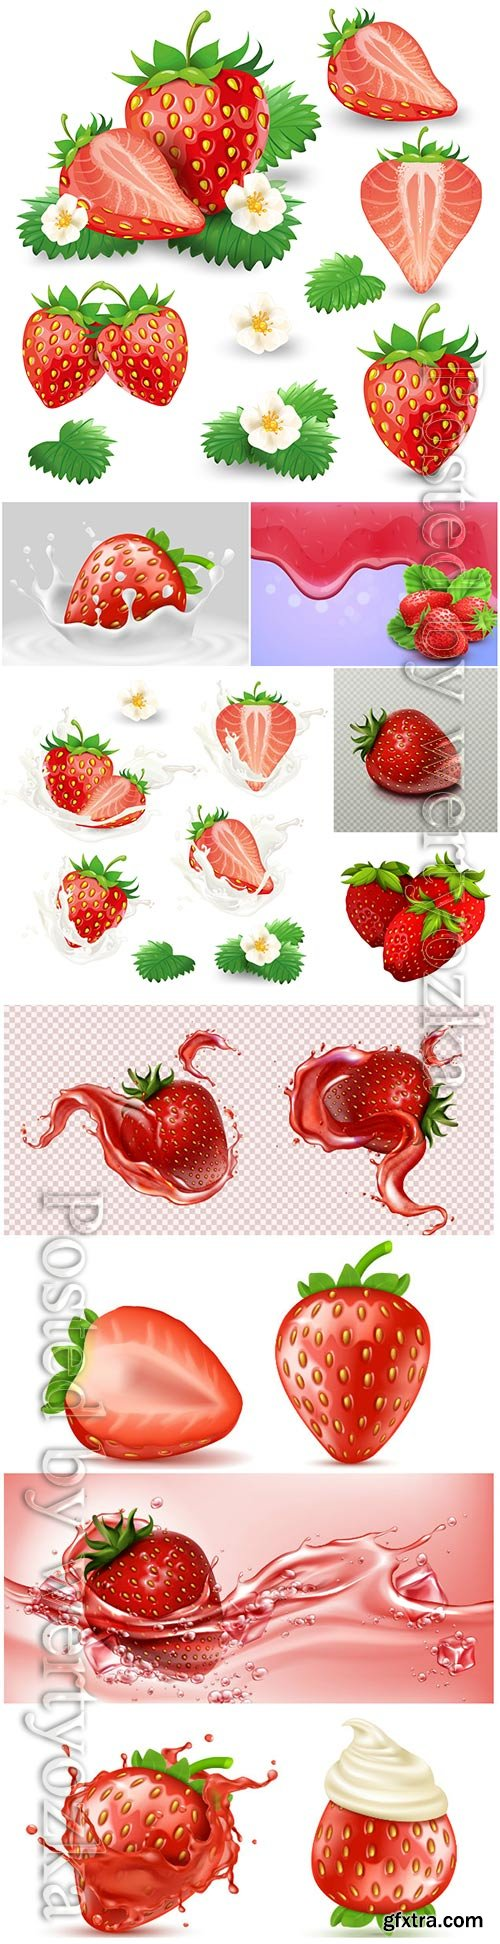 Strawberries, fruits and berries in vector